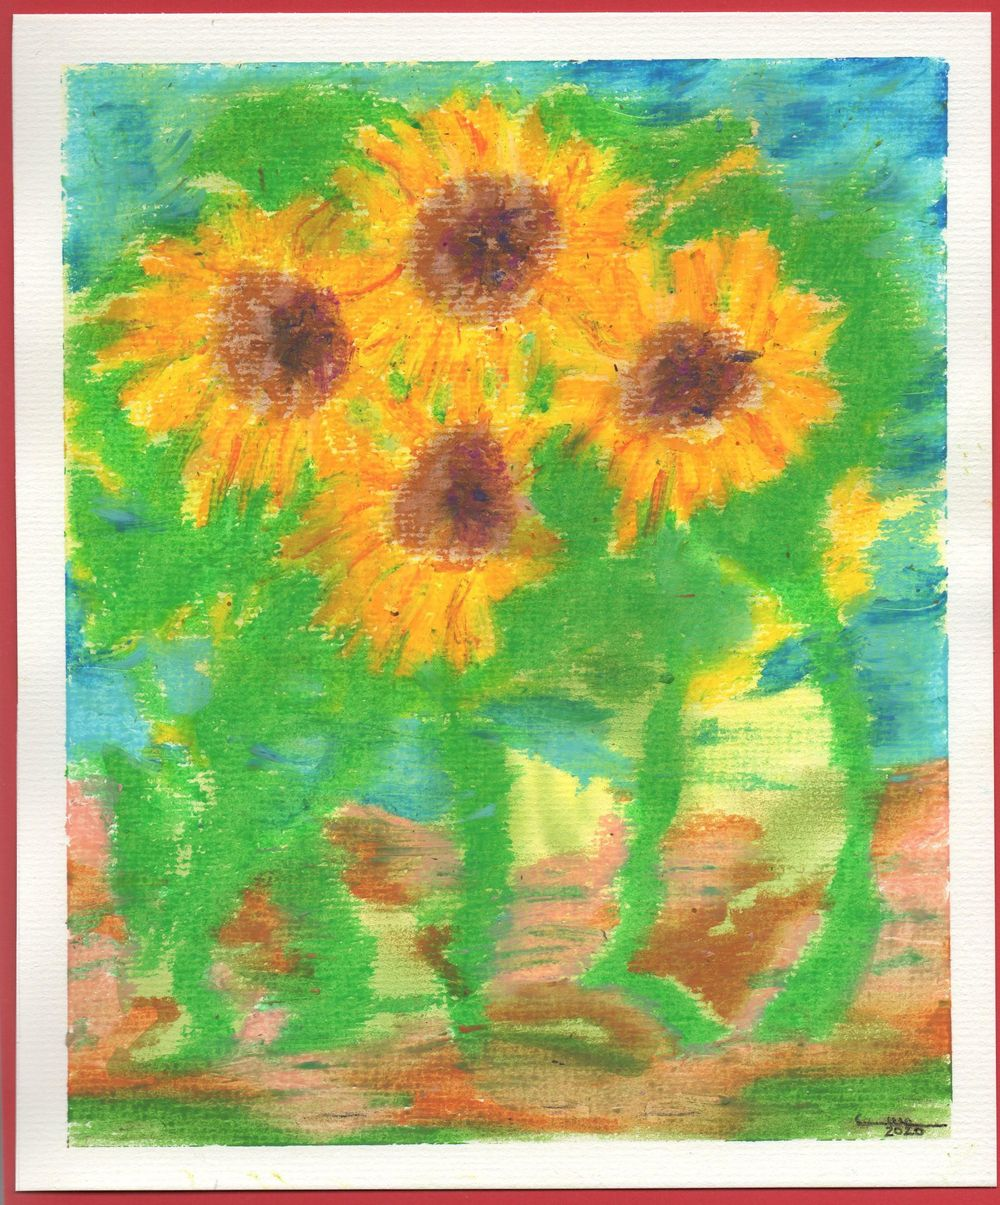 Oil Pastel & Watercolor - image 1 - student project